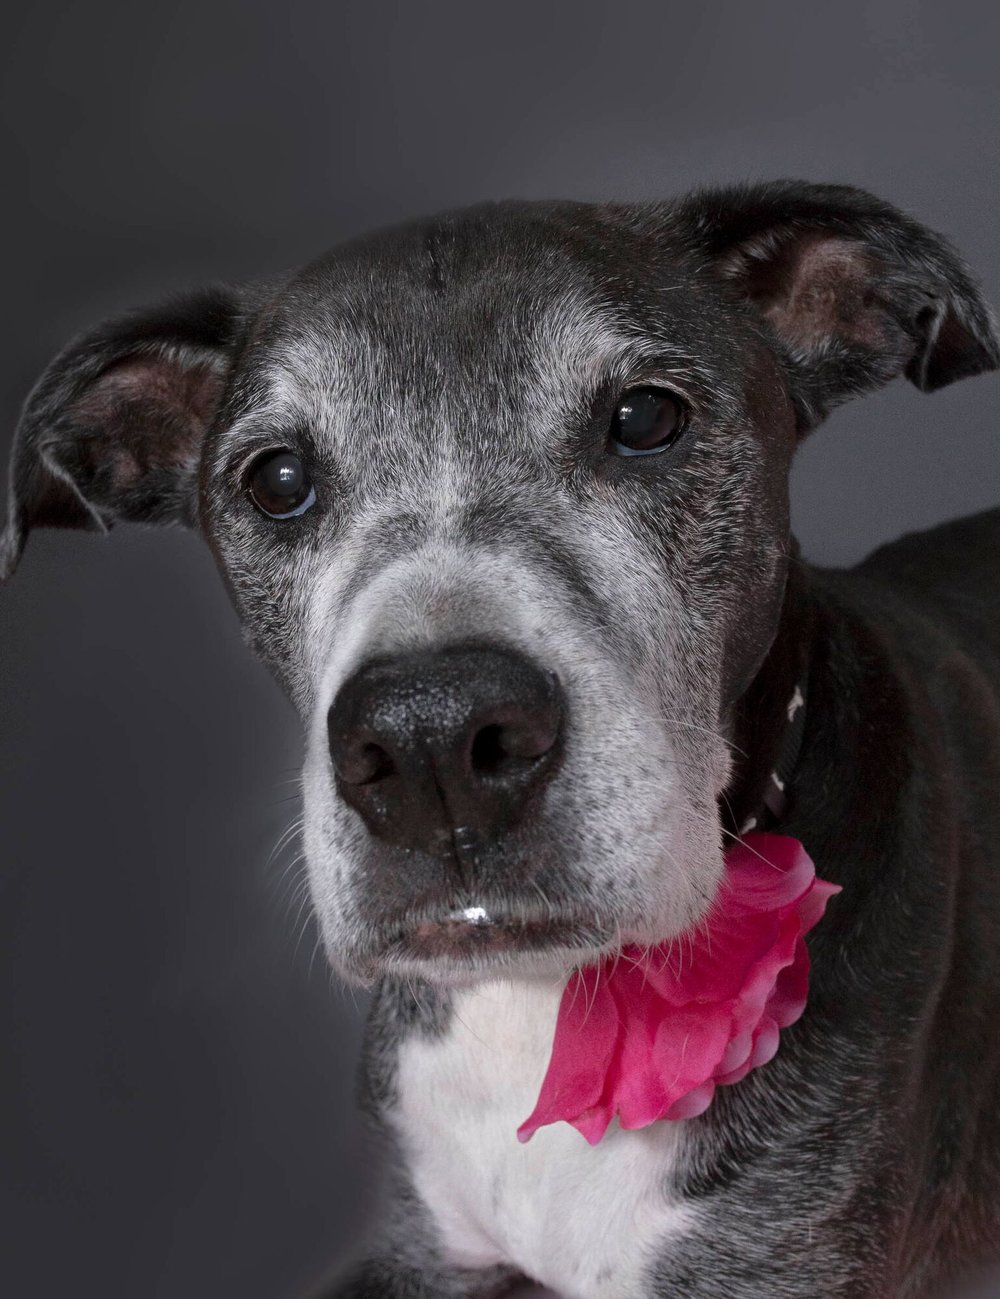 Kim came and photographed my sweet senior dog Roo. She was so patient and professional, and its obvious what an incredible rapport she has with animals - I was amazed at what she got Roo to do and what amazing photos she took. Can't recommend her enough! -